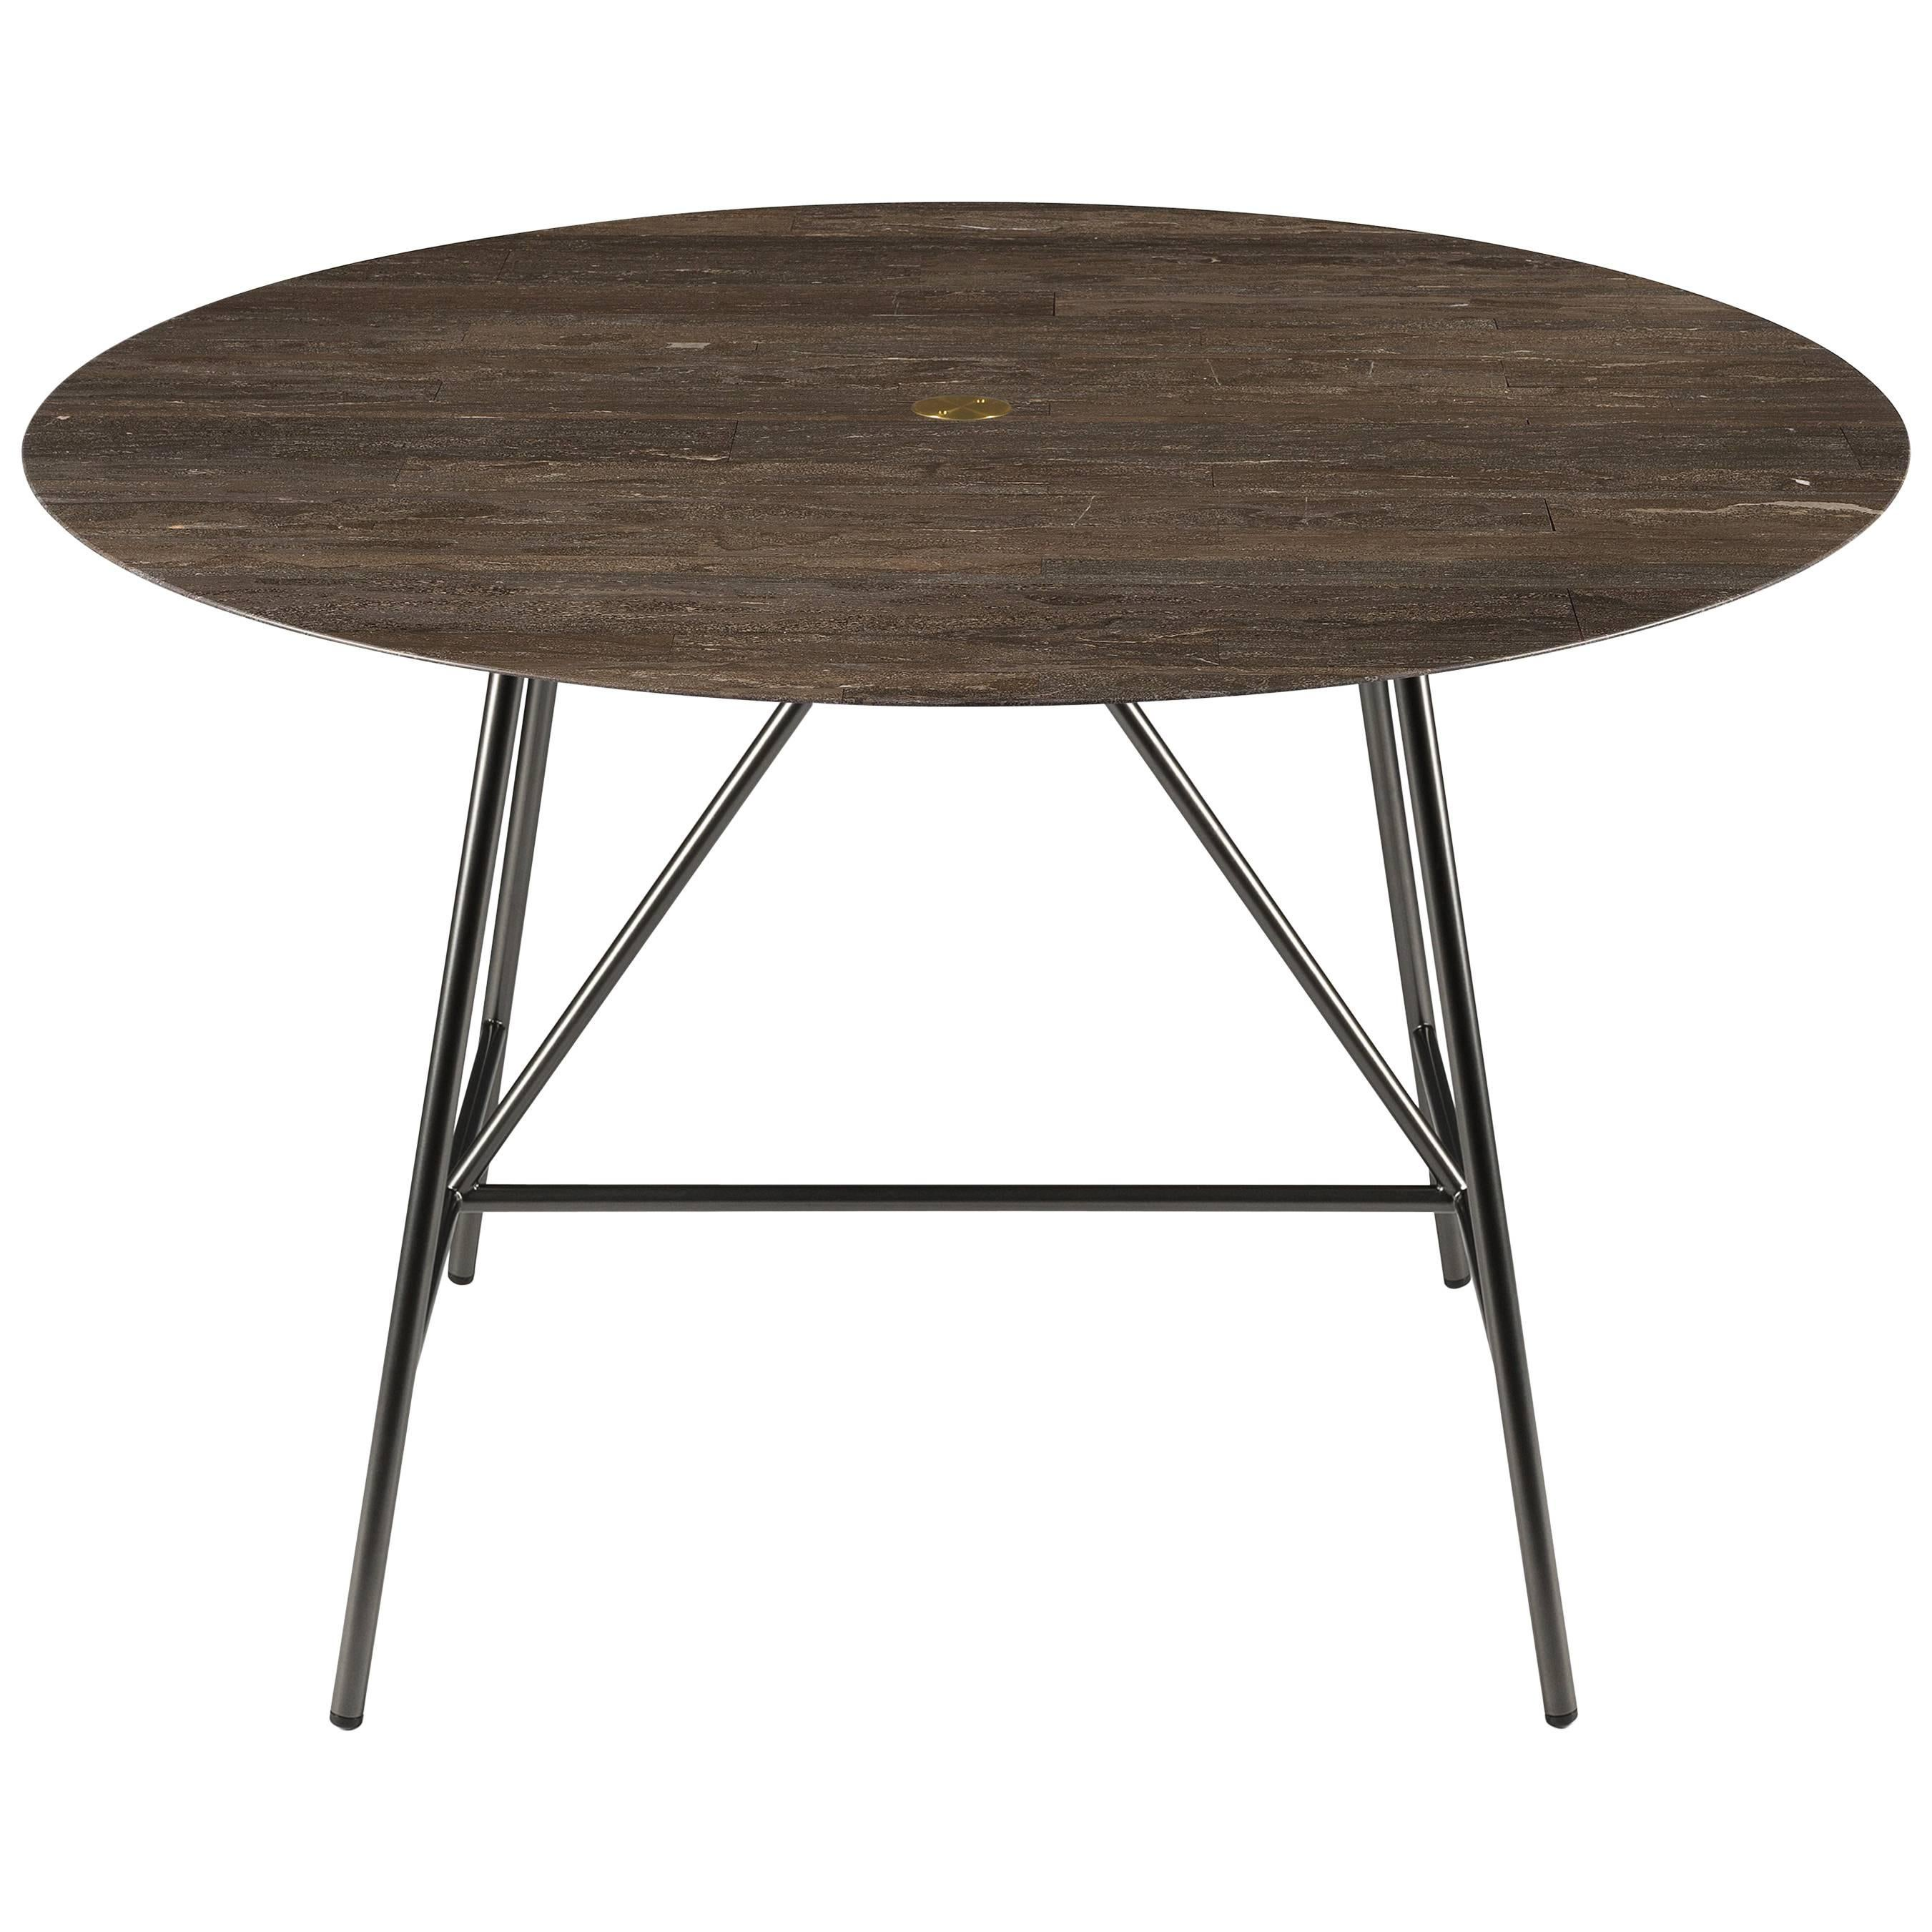 Salvatori Small W Round Dining Table In Lithoverde® Pietra Du0027Avola Natural  Stone